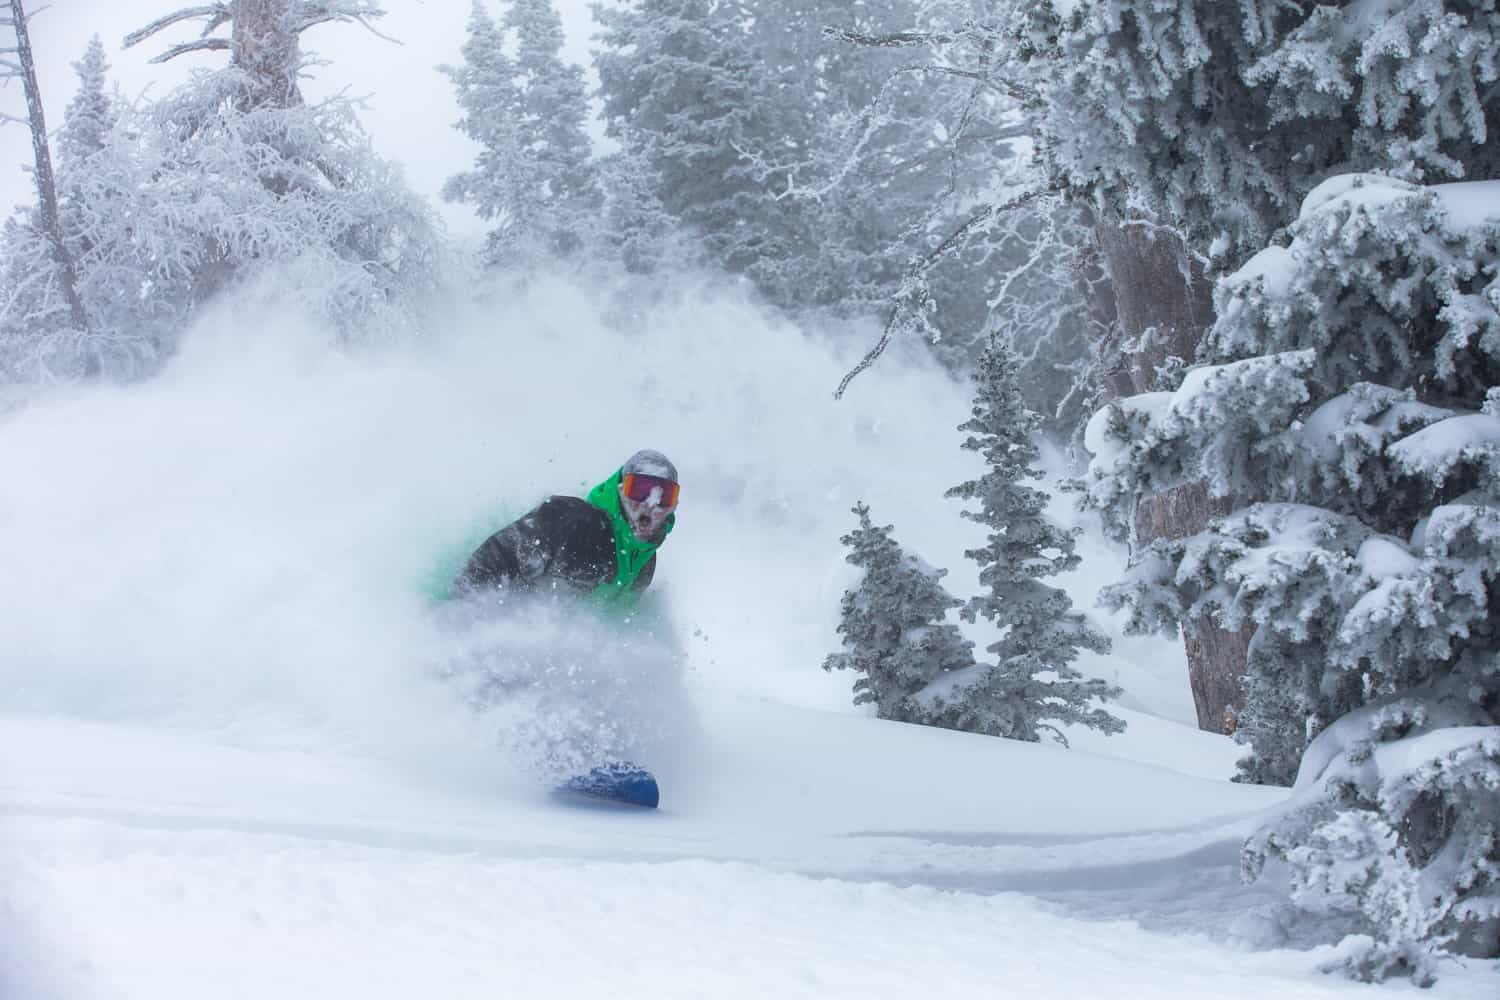 World Snow Wrap, January 17 - Big Totals For Whistler and Jackson, A Few Snowfalls In Japan, Snow On The Way For Europe